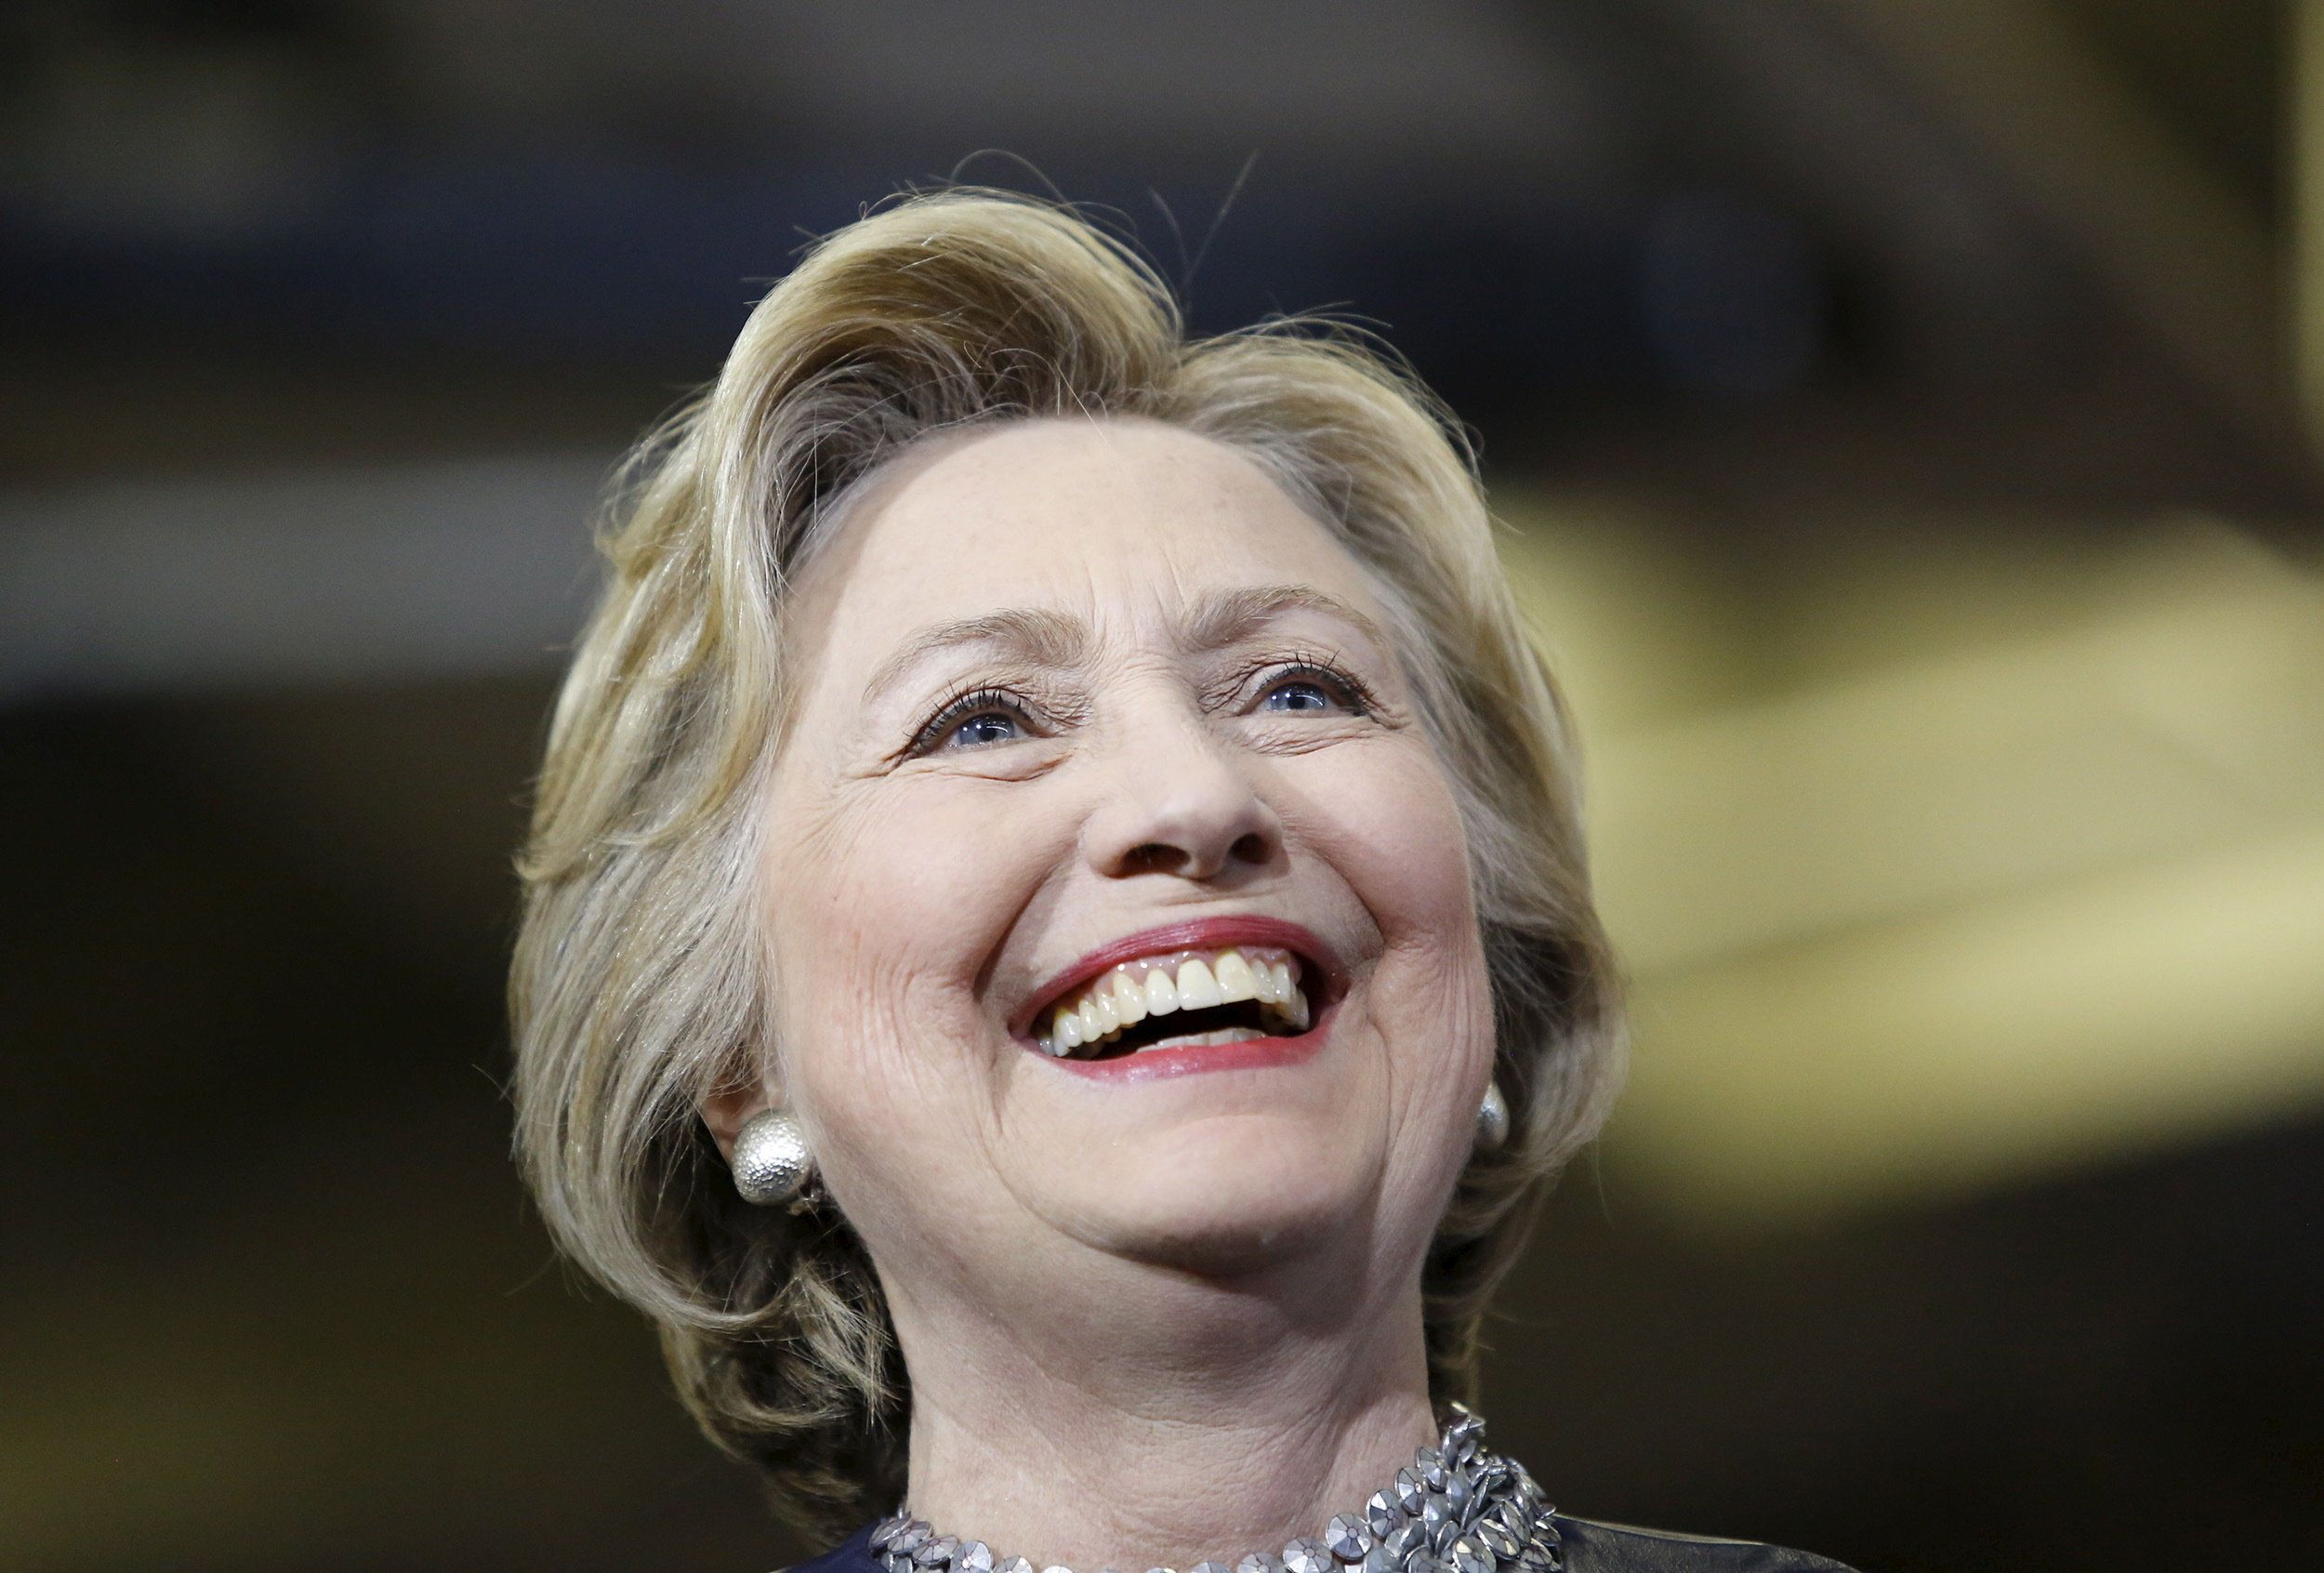 U.S. Democratic presidential candidate Hillary Clinton smiles as she speaks during a campaign rally in Central Falls, Rhode Island, April 23, 2016.     REUTERS/Mary Schwalm